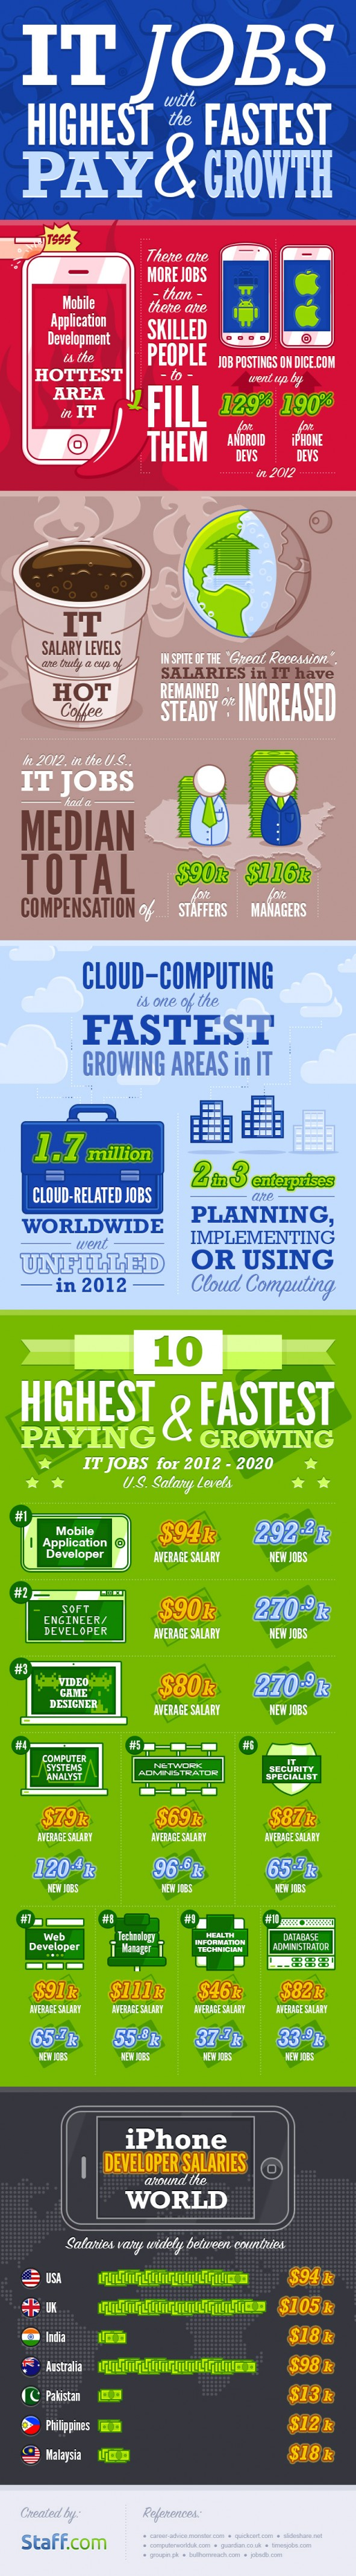 it jobs growth and pay